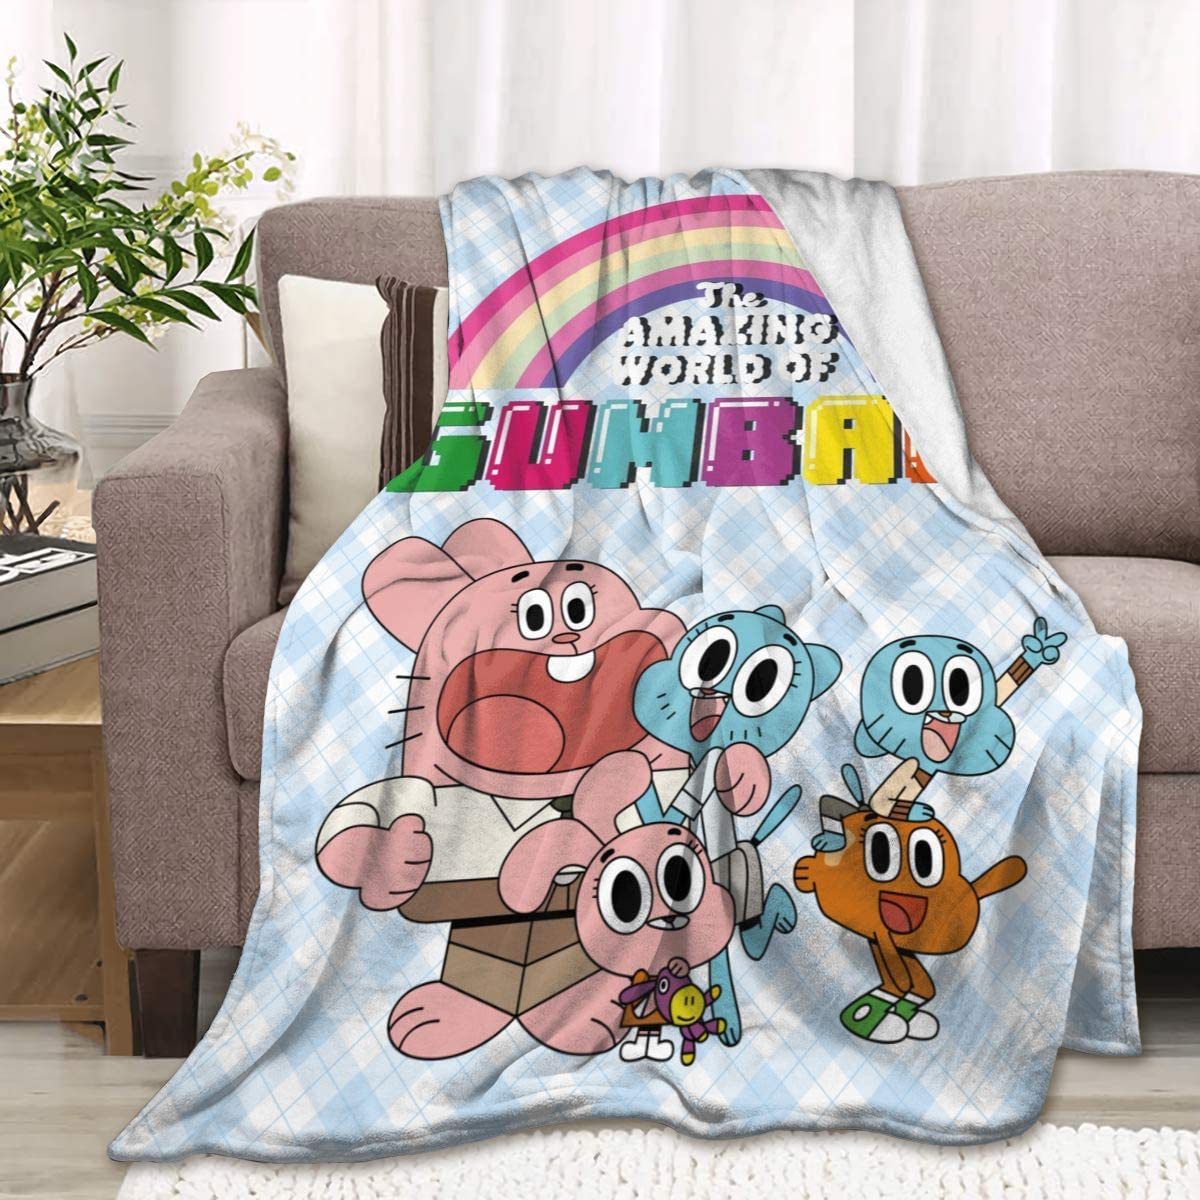 Uzila The Amazing World of Gumball Flannel Blanket Bedding Super Soft Plush Throw Comfort Warm Blanket for Children Boys Or Adult Couch Bed Chair Office Sofa Living Room Decor 50X40 for Kids